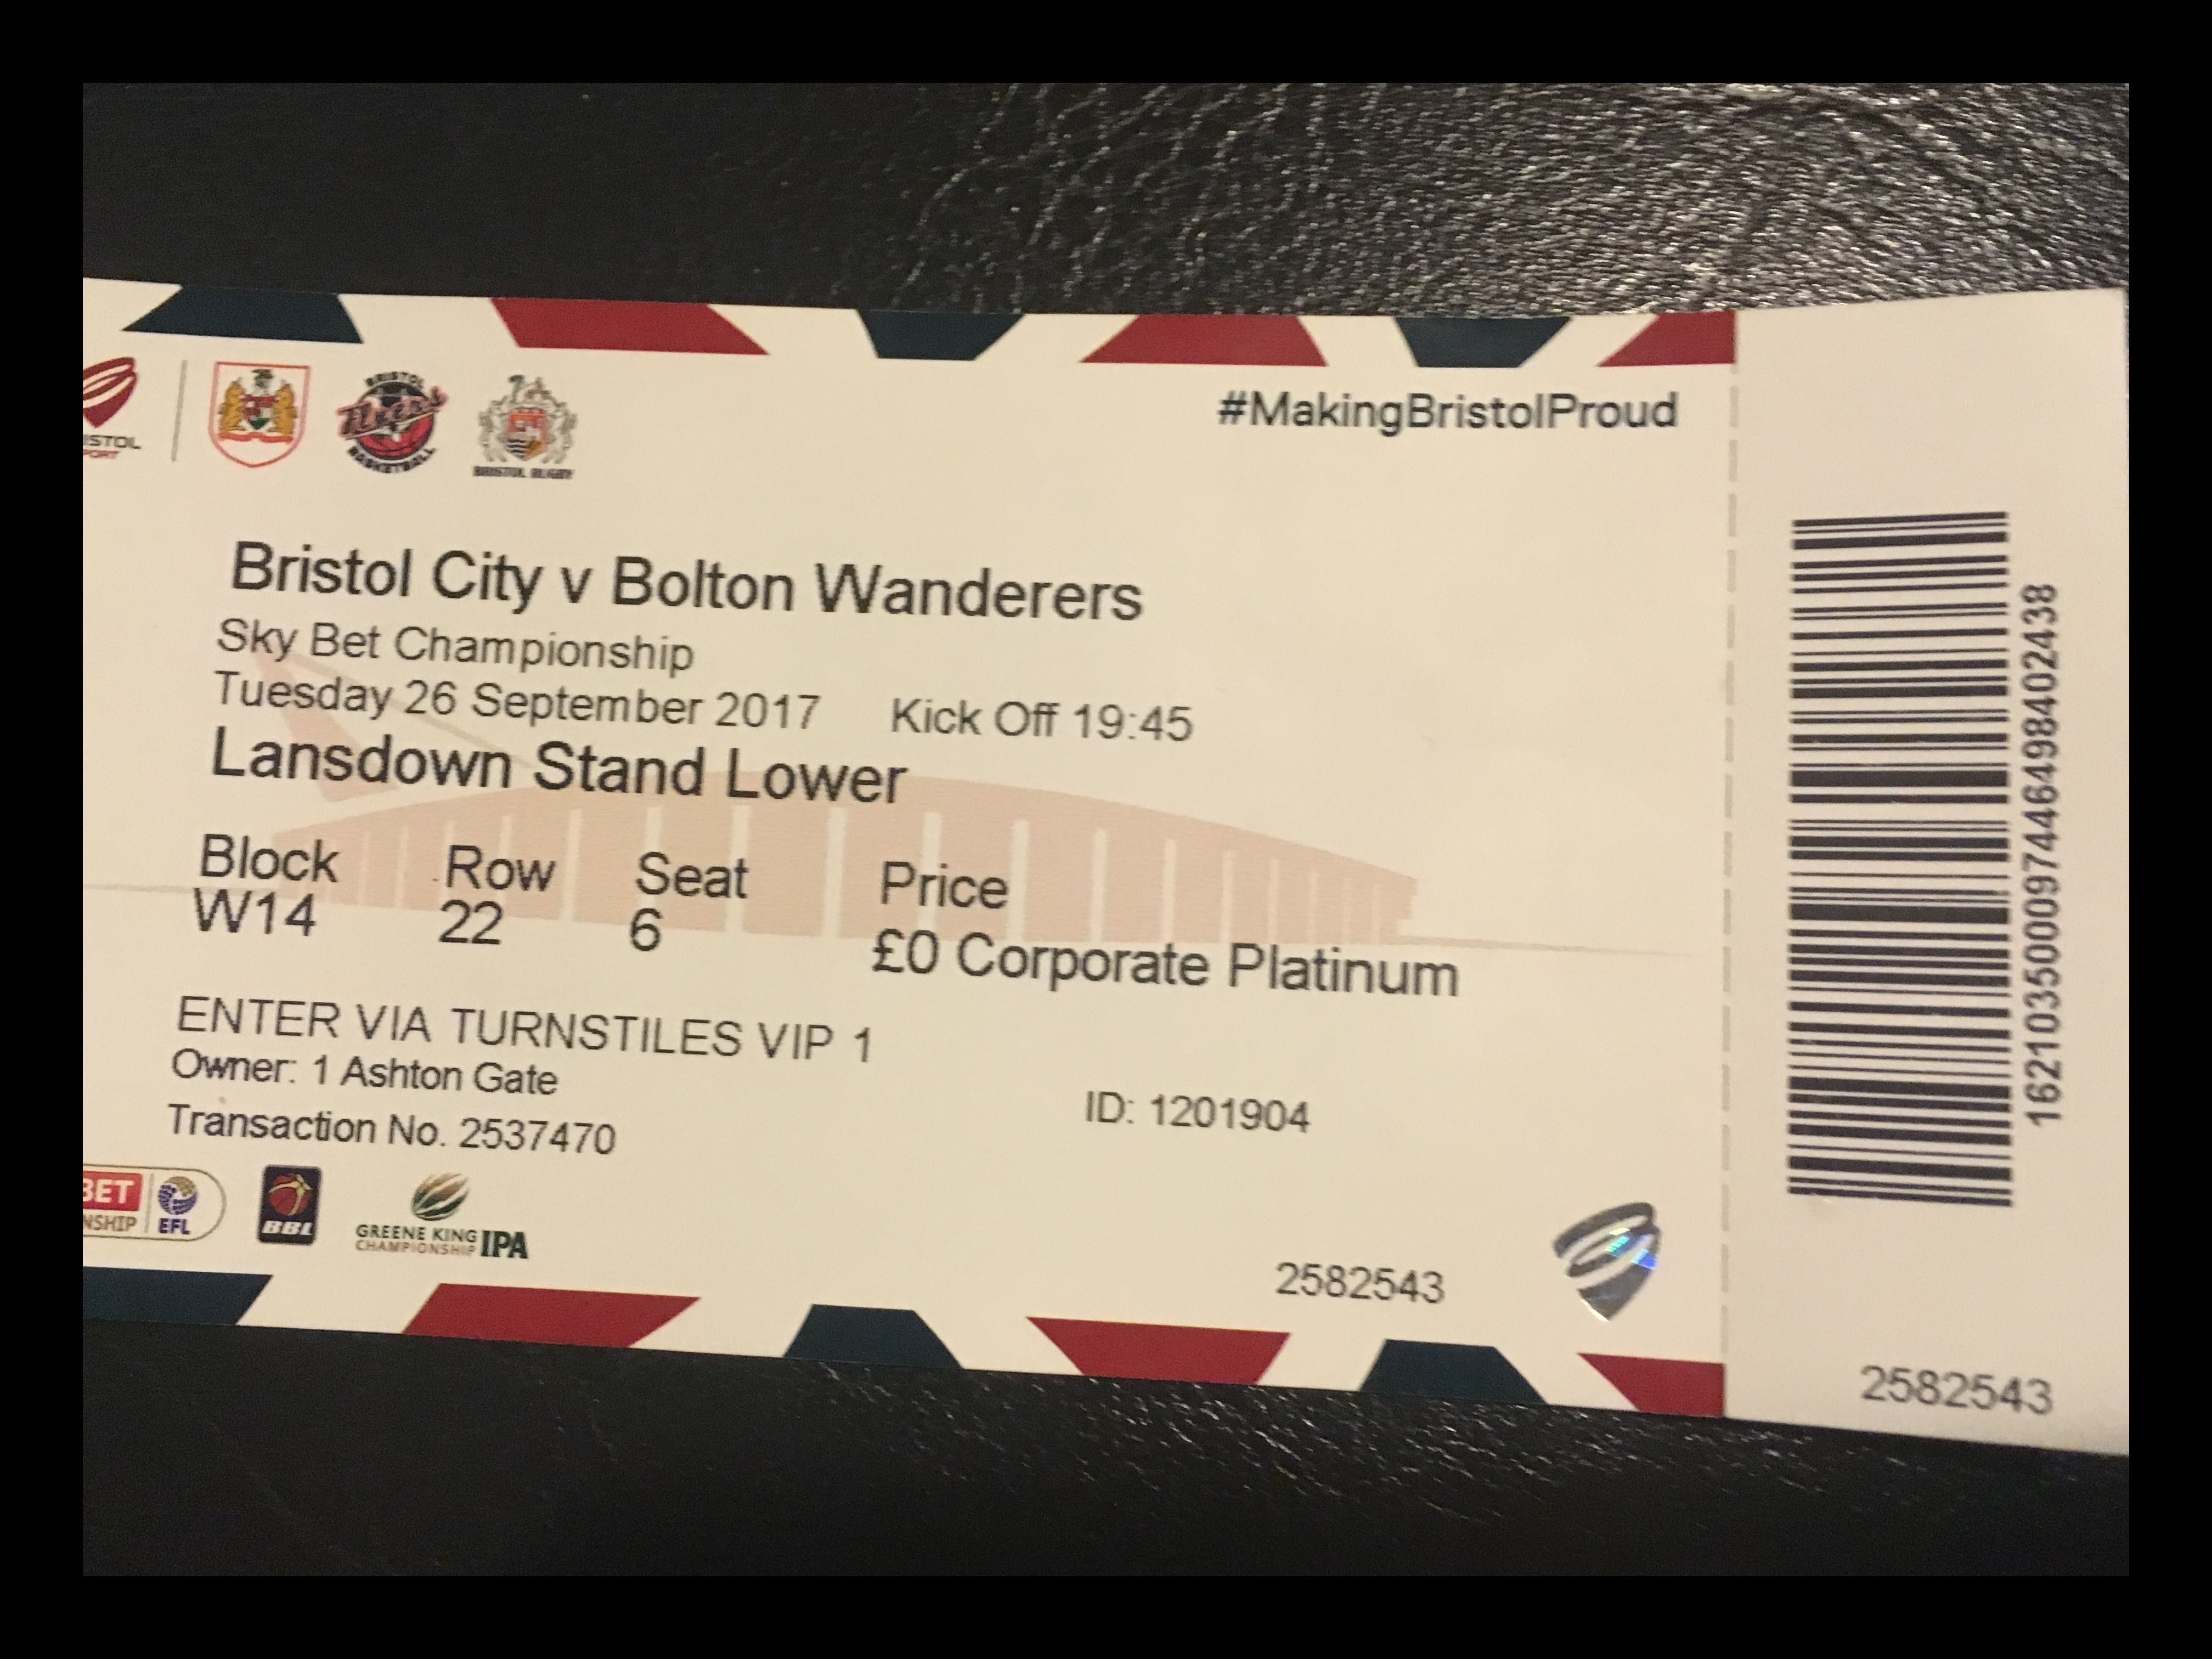 Bristol City v Bolton 26-09-17 Ticket